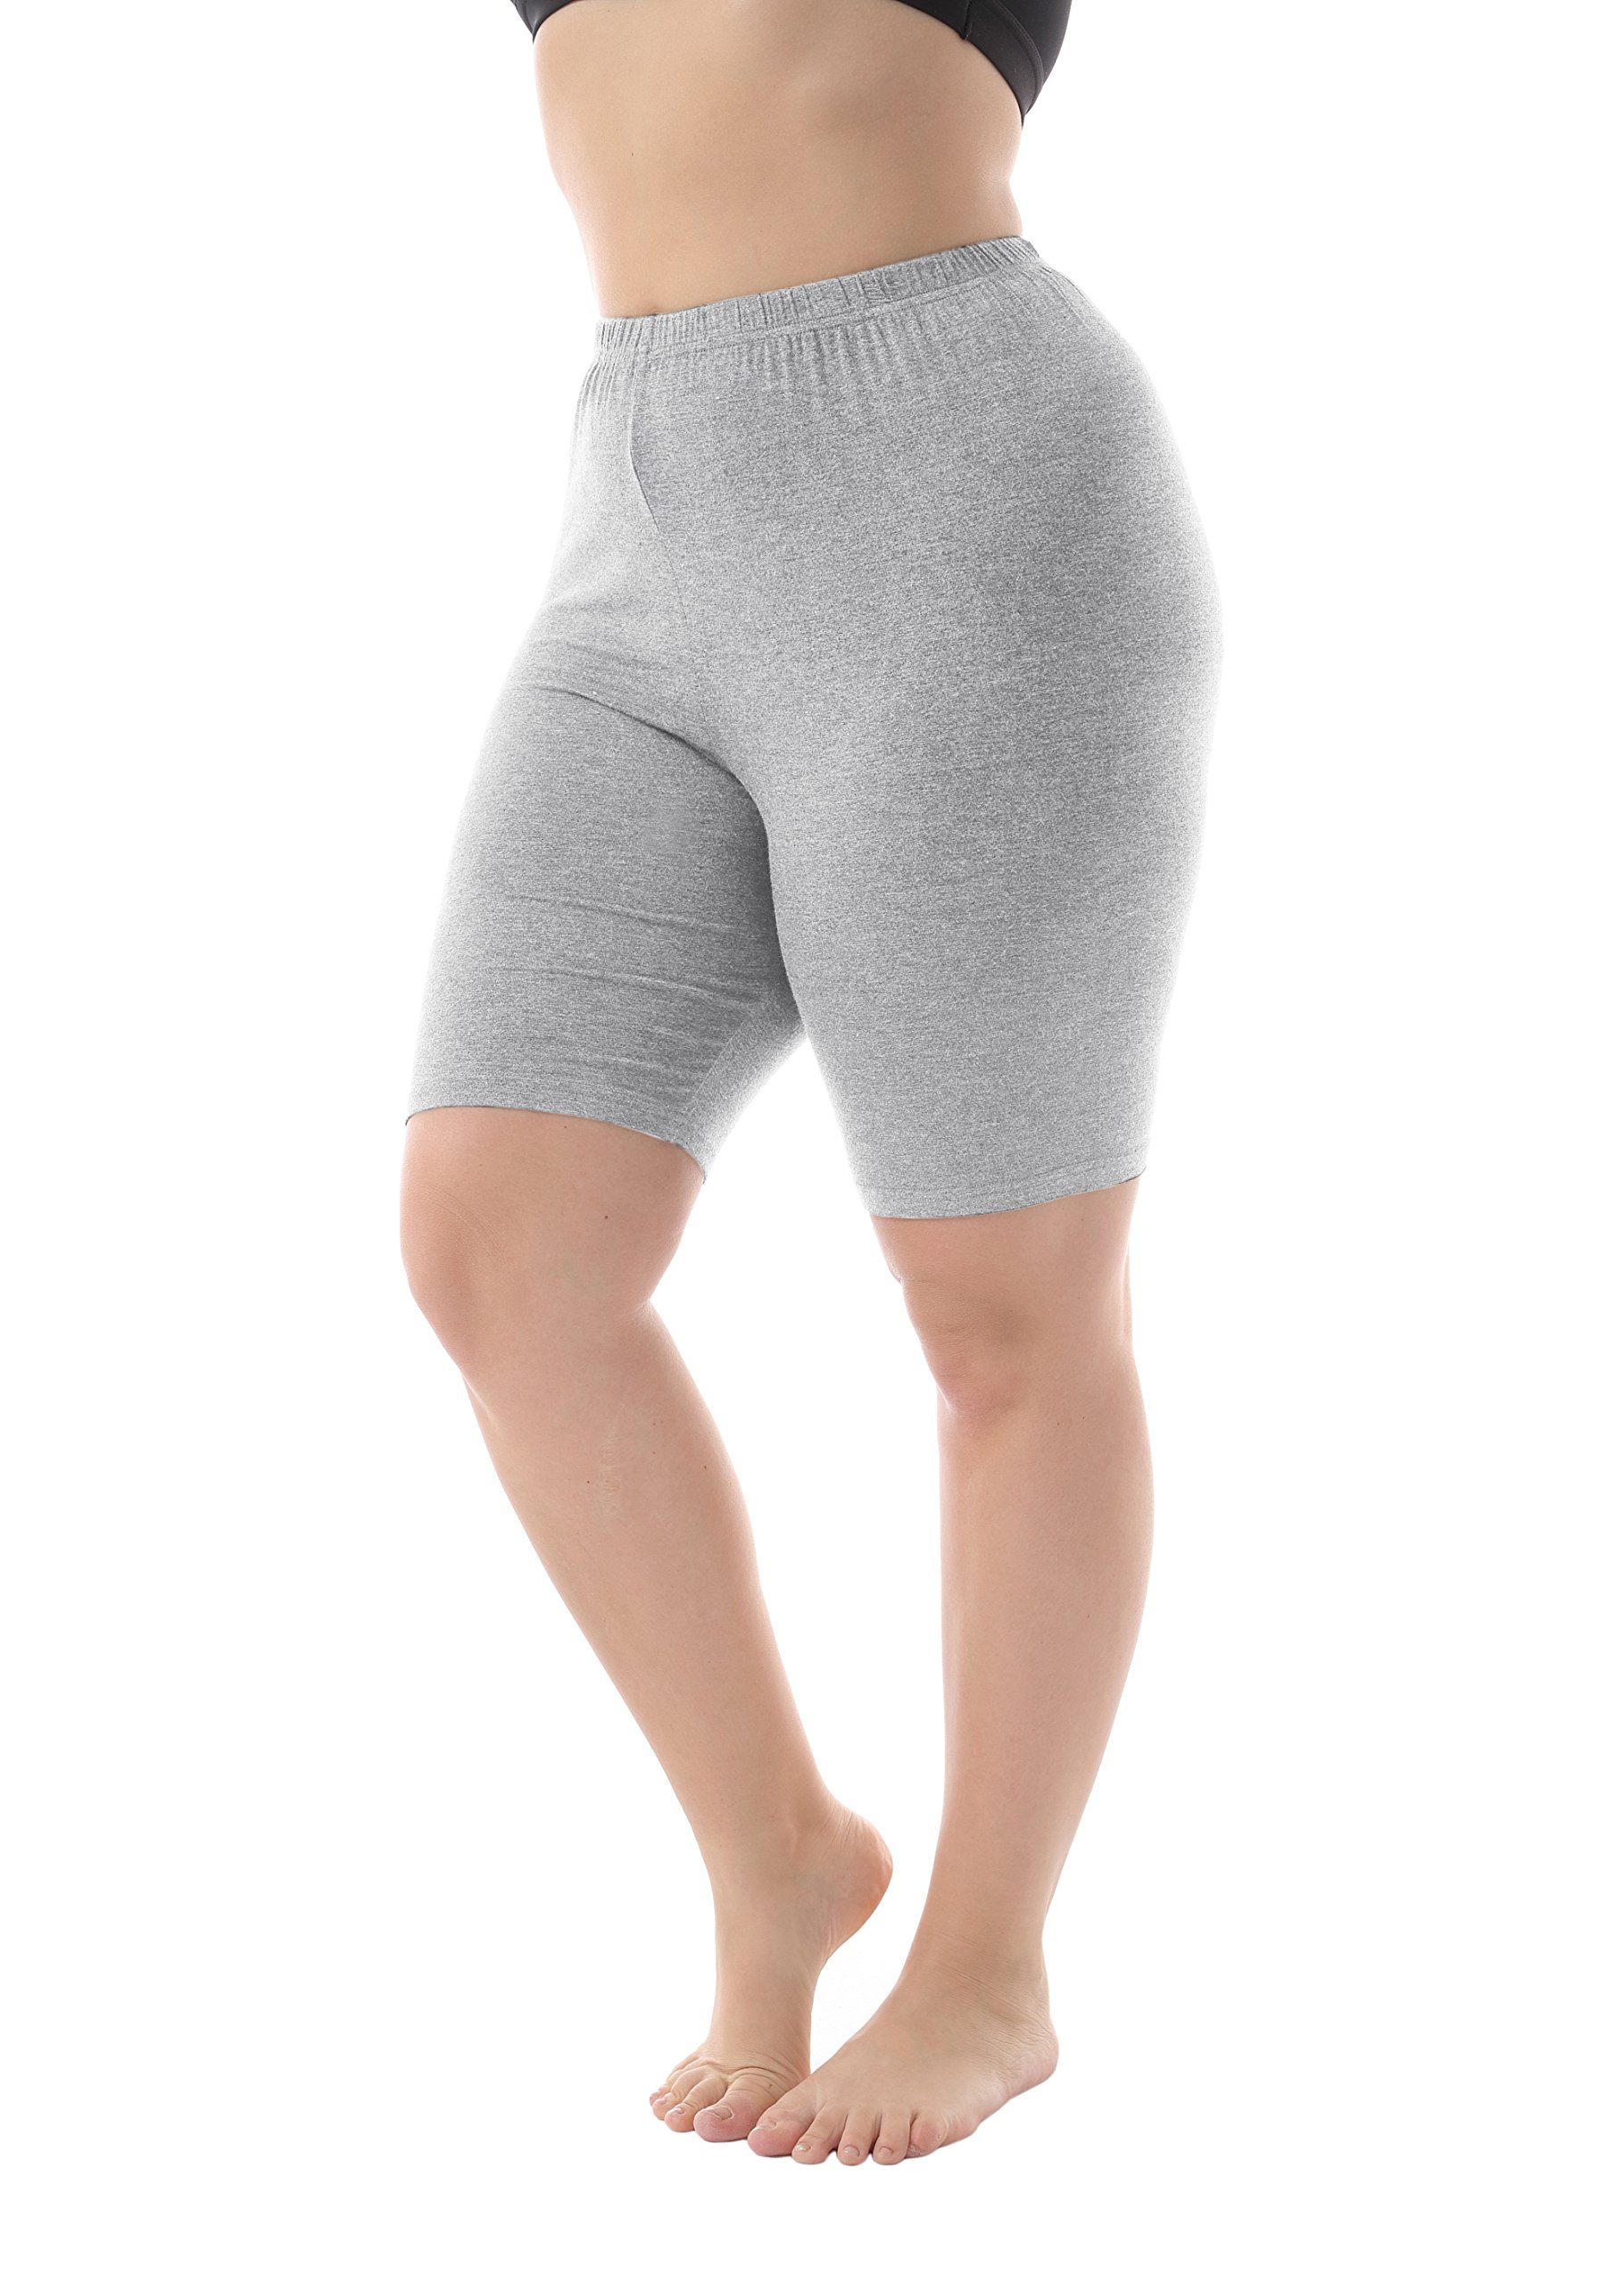 Zerdocean Leggings Women's Modal Plus Size Mid Thigh Shorts Light Gray 4X